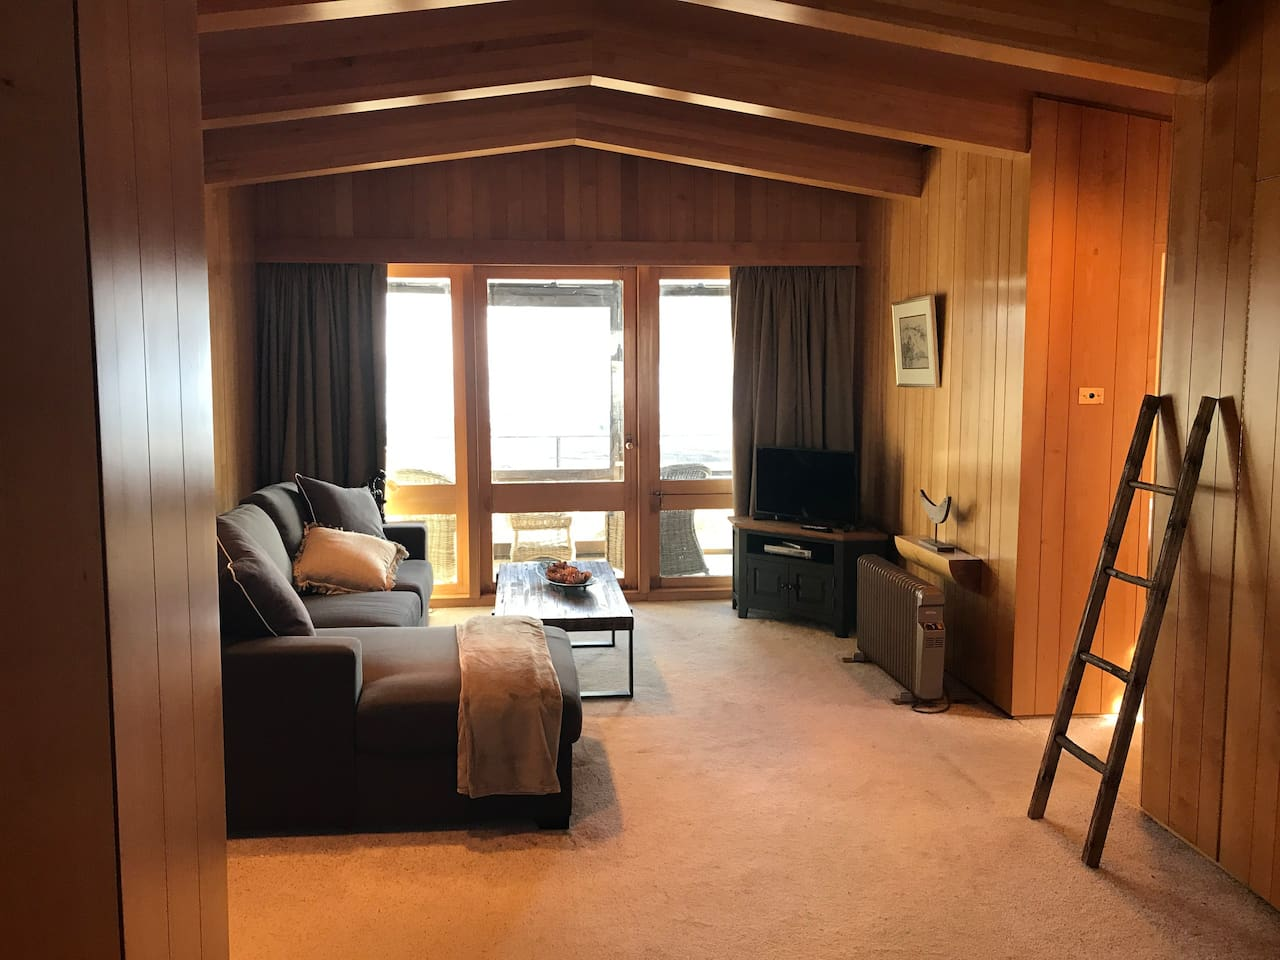 On Snow Accommodation - 2 Bedroom Apartment only a short walk to the slopes